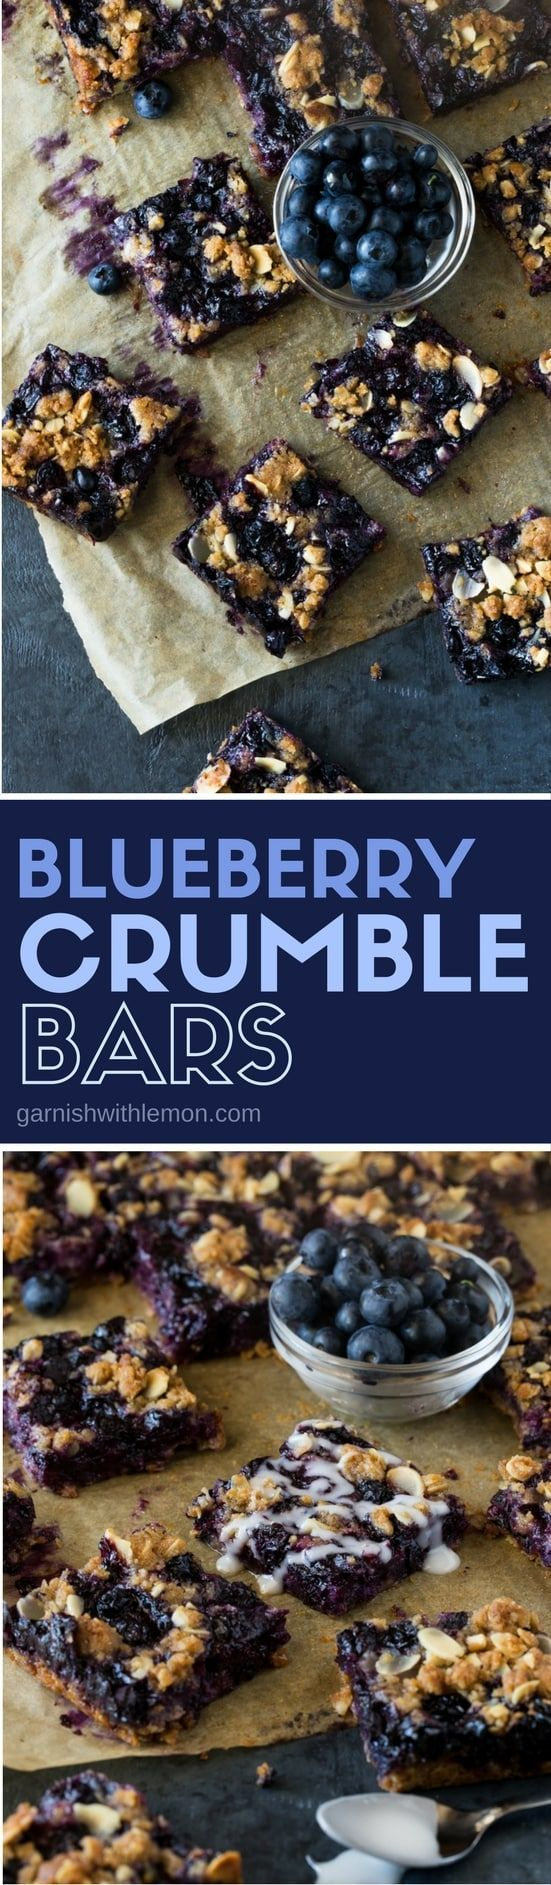 The crust is also the topping in these quick and easy Blueberry Crumble Bars - a great dessert recipe for your next picnic or BBQ!